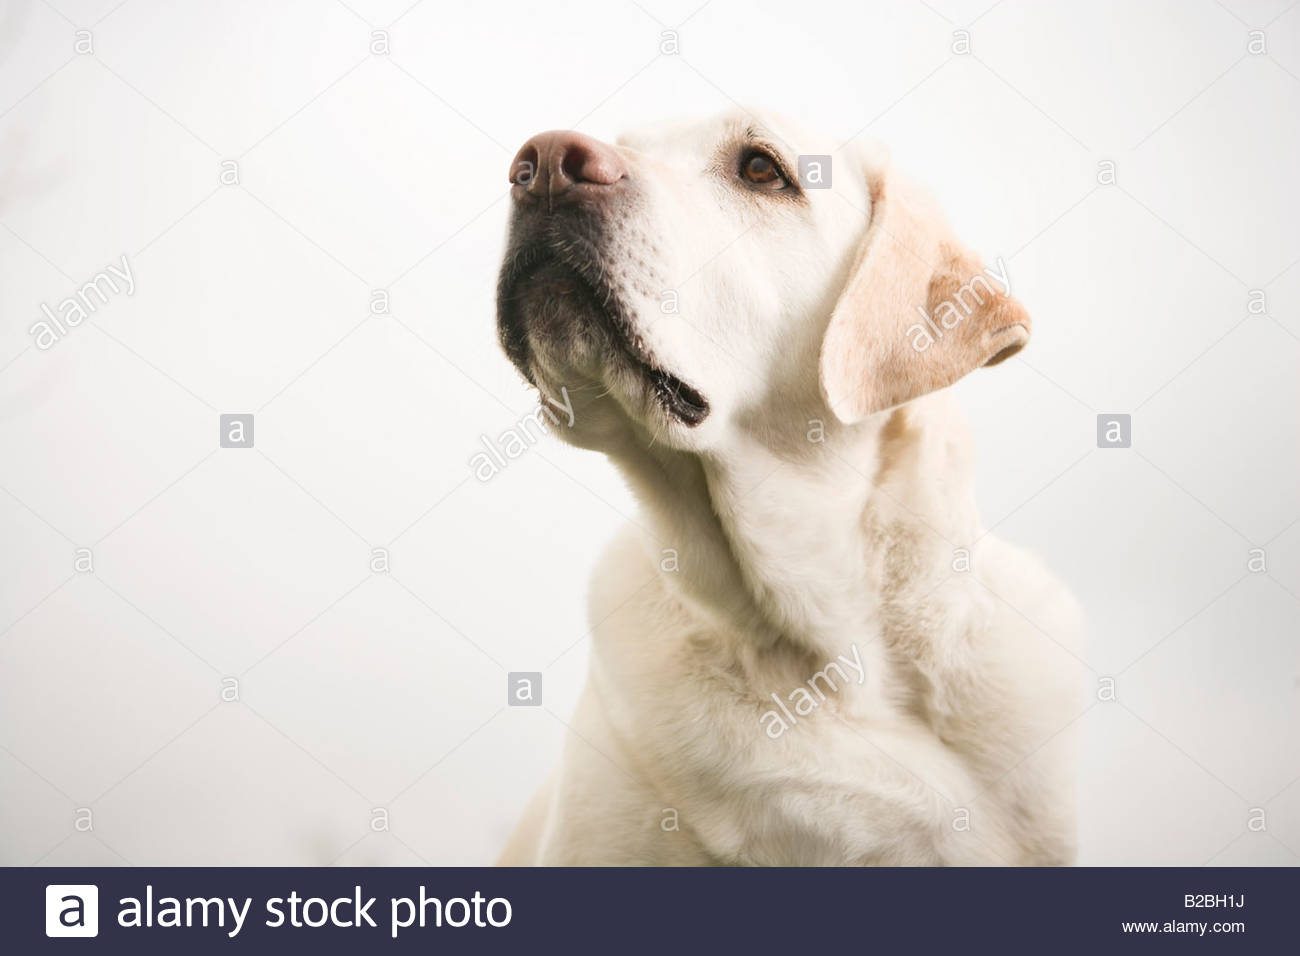 Gros plan du chien Photo Stock